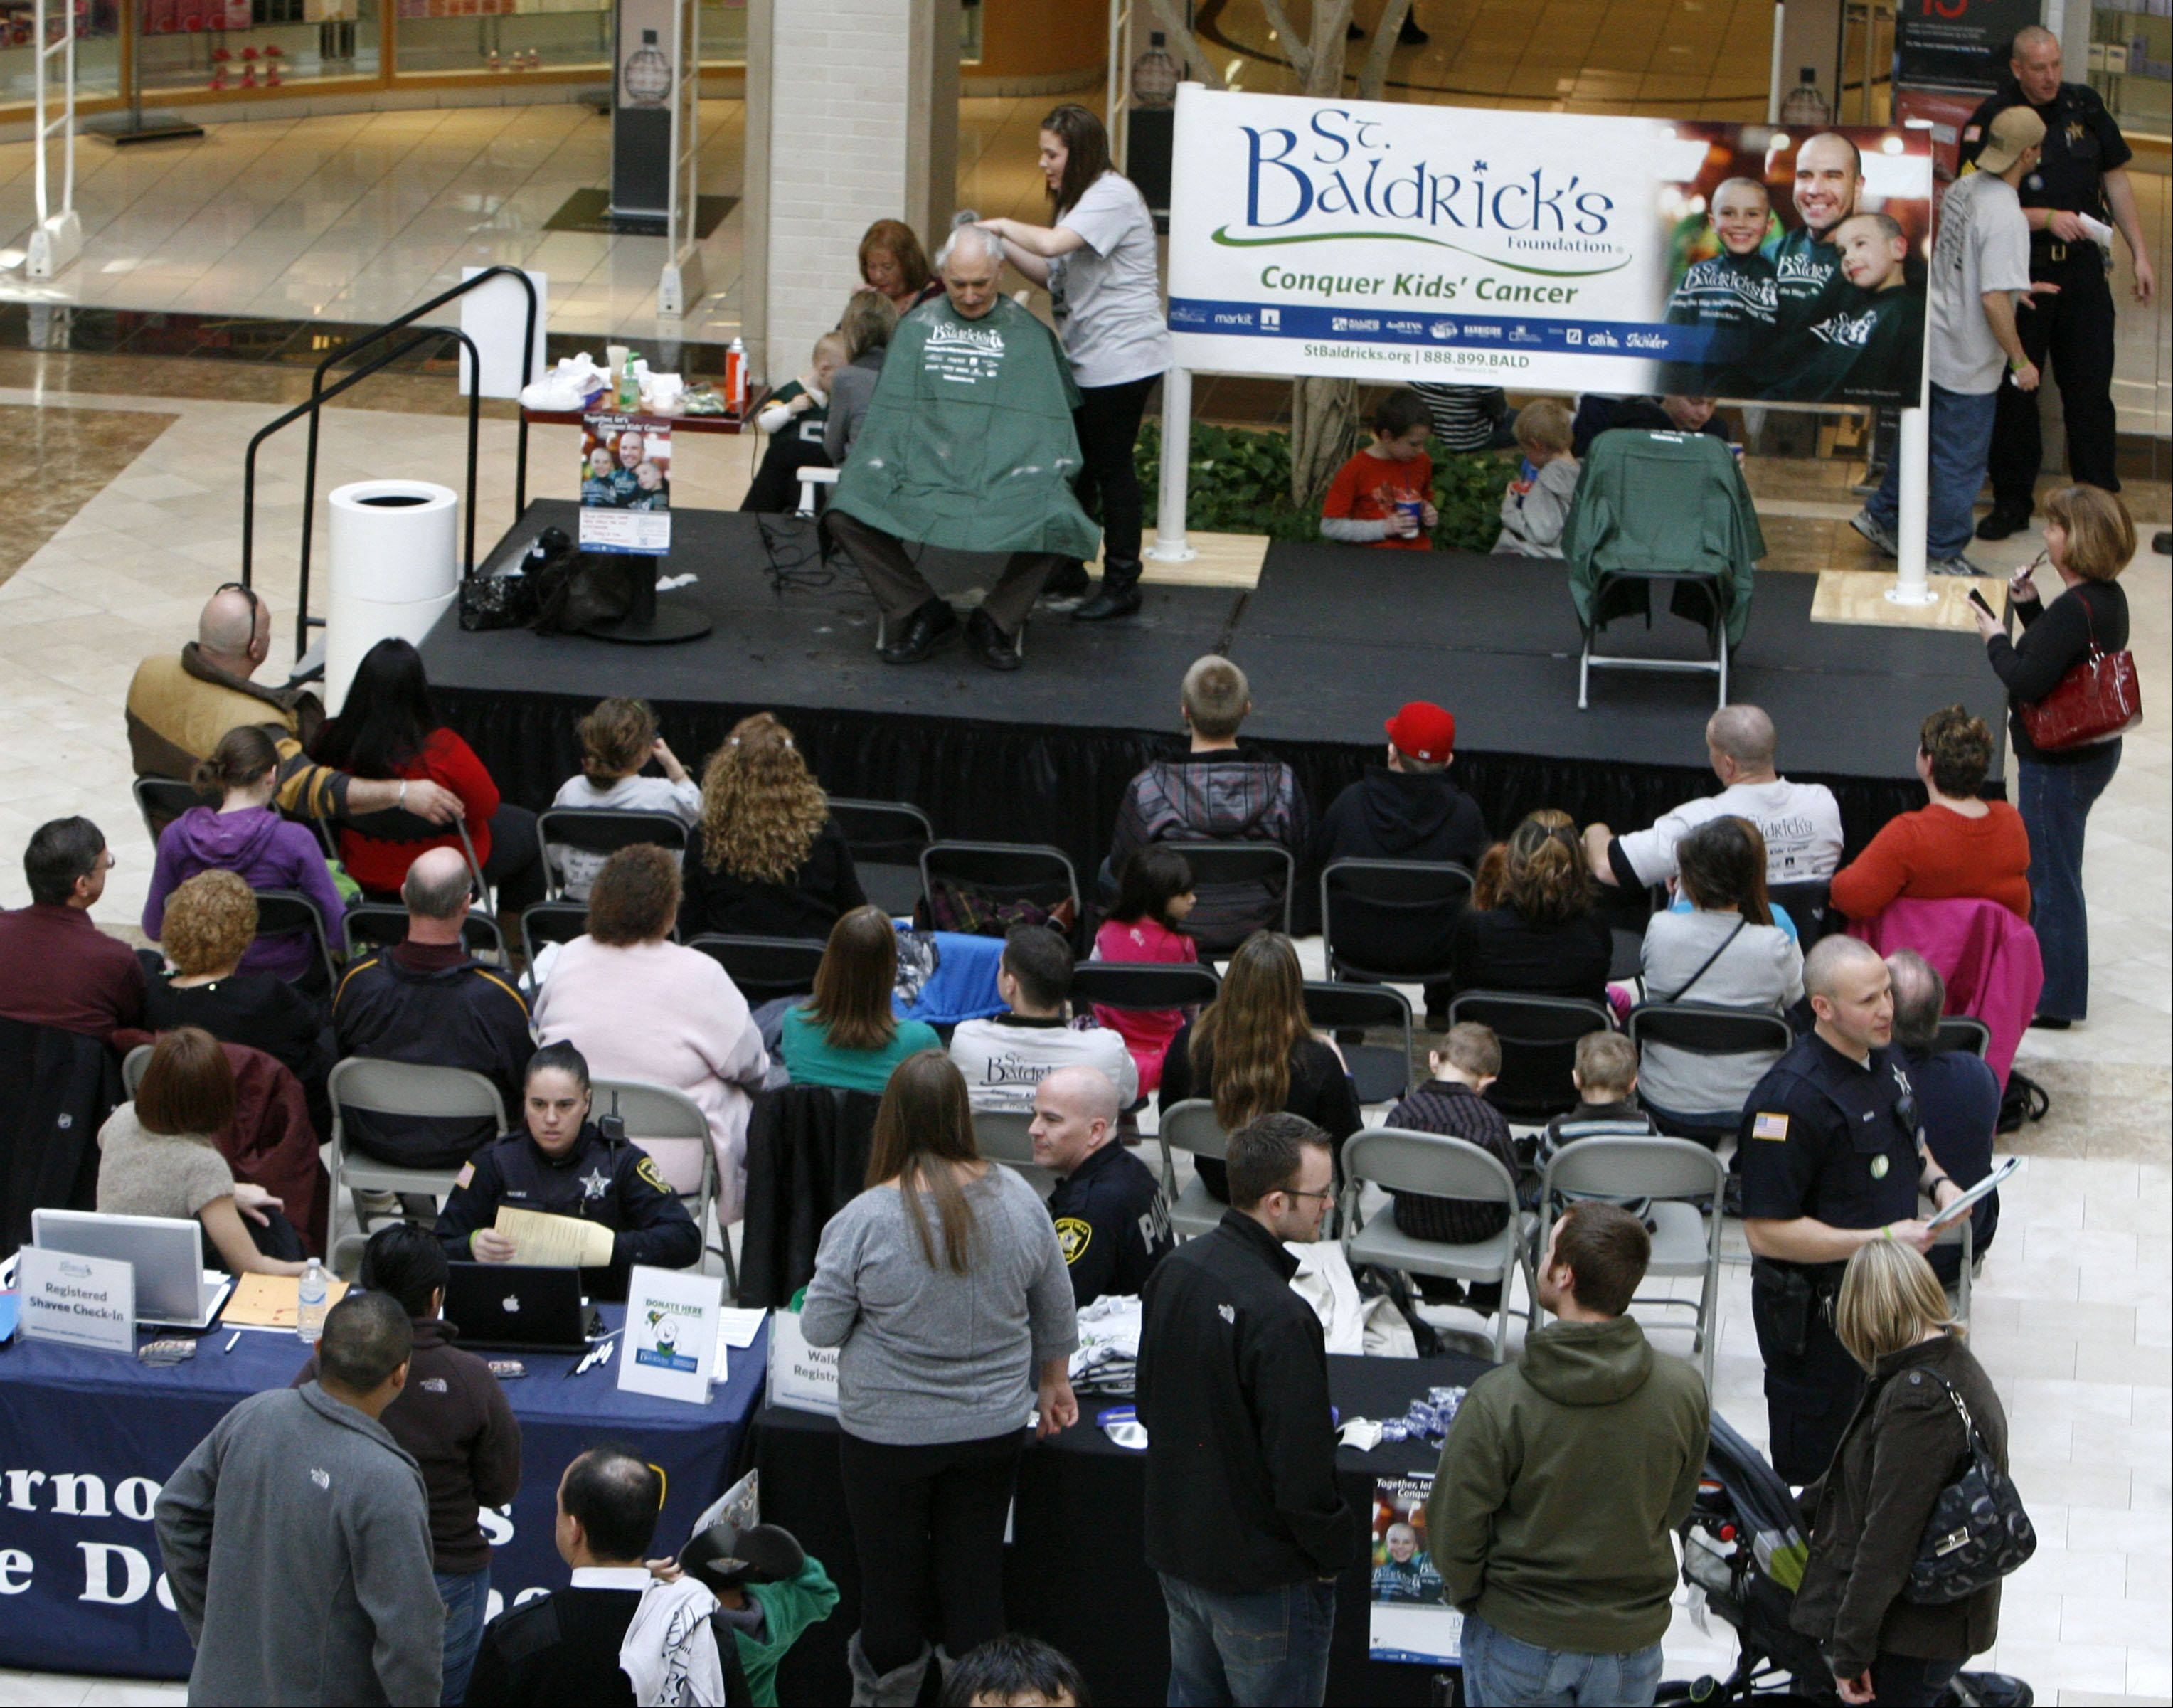 About 200 attended as Vernon Hills Police officers volunteered to have their heads shaved during the Vernon Hills St. Baldrick�s event to raise money to fight childhood cancer held at Westfield Hawthorn Mall in Vernon Hills on Saturday, March 10th.